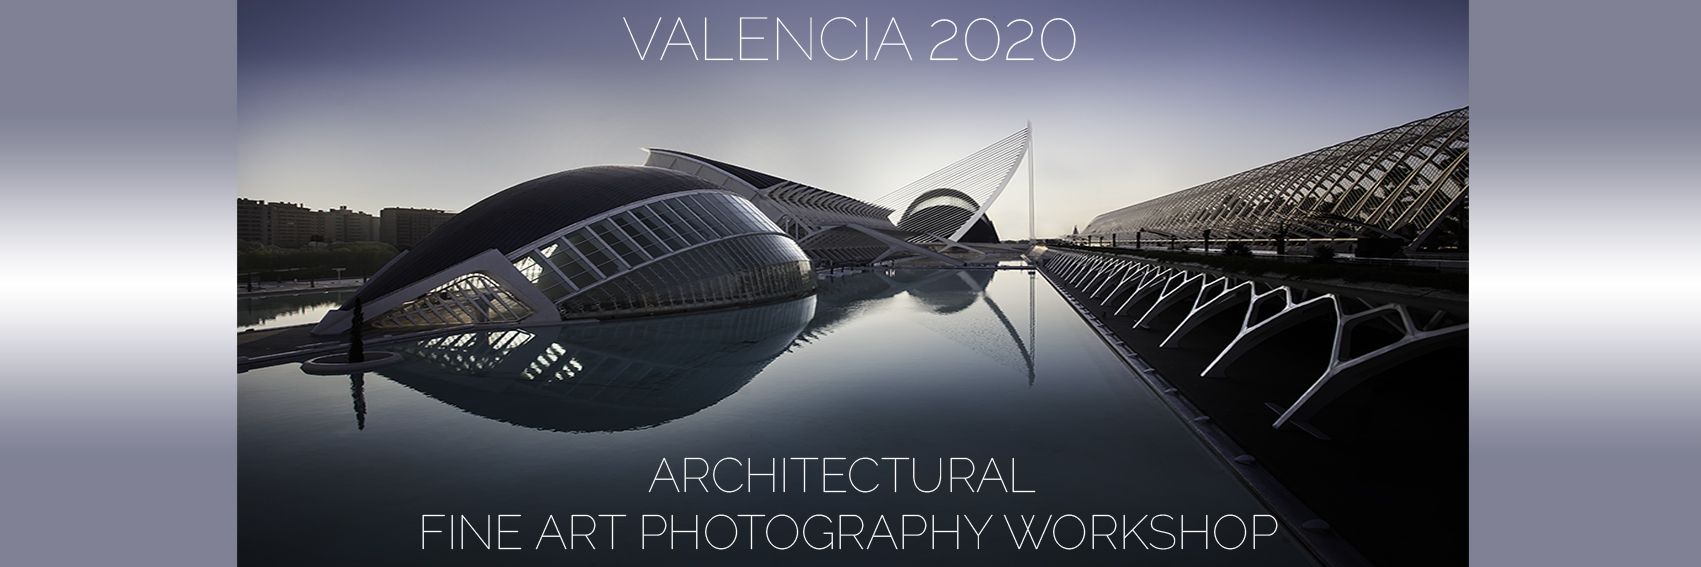 Valencia 2020 Workshop